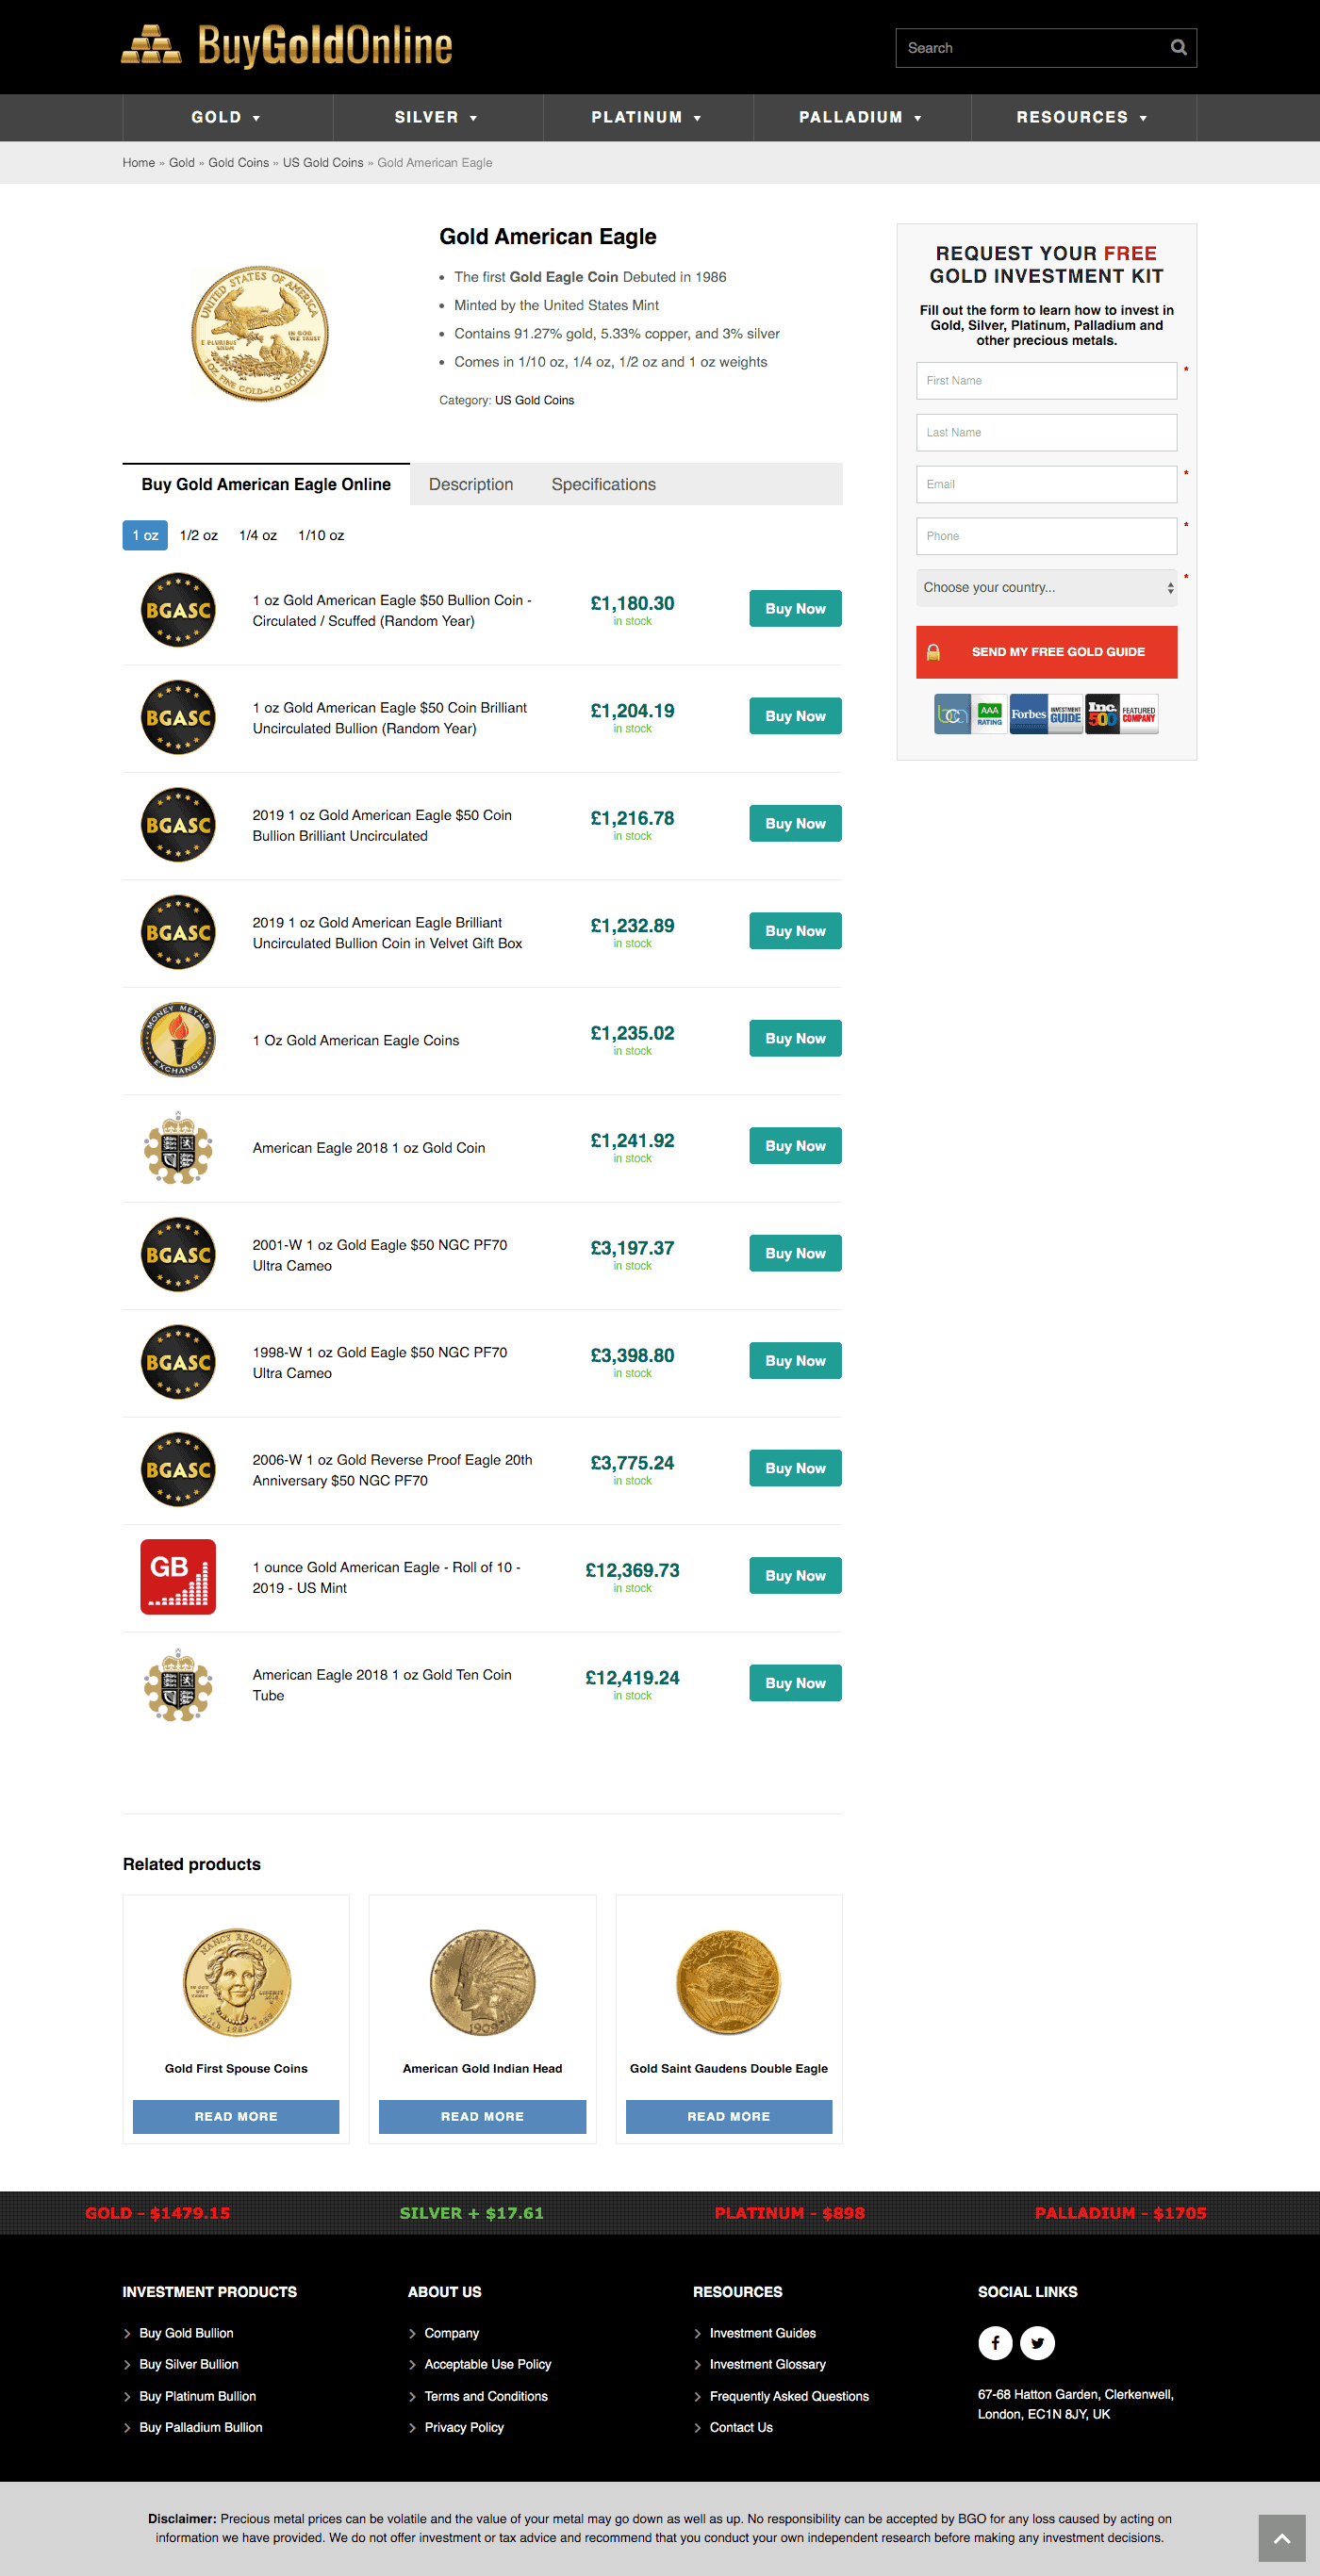 Buy Gold Online - Product